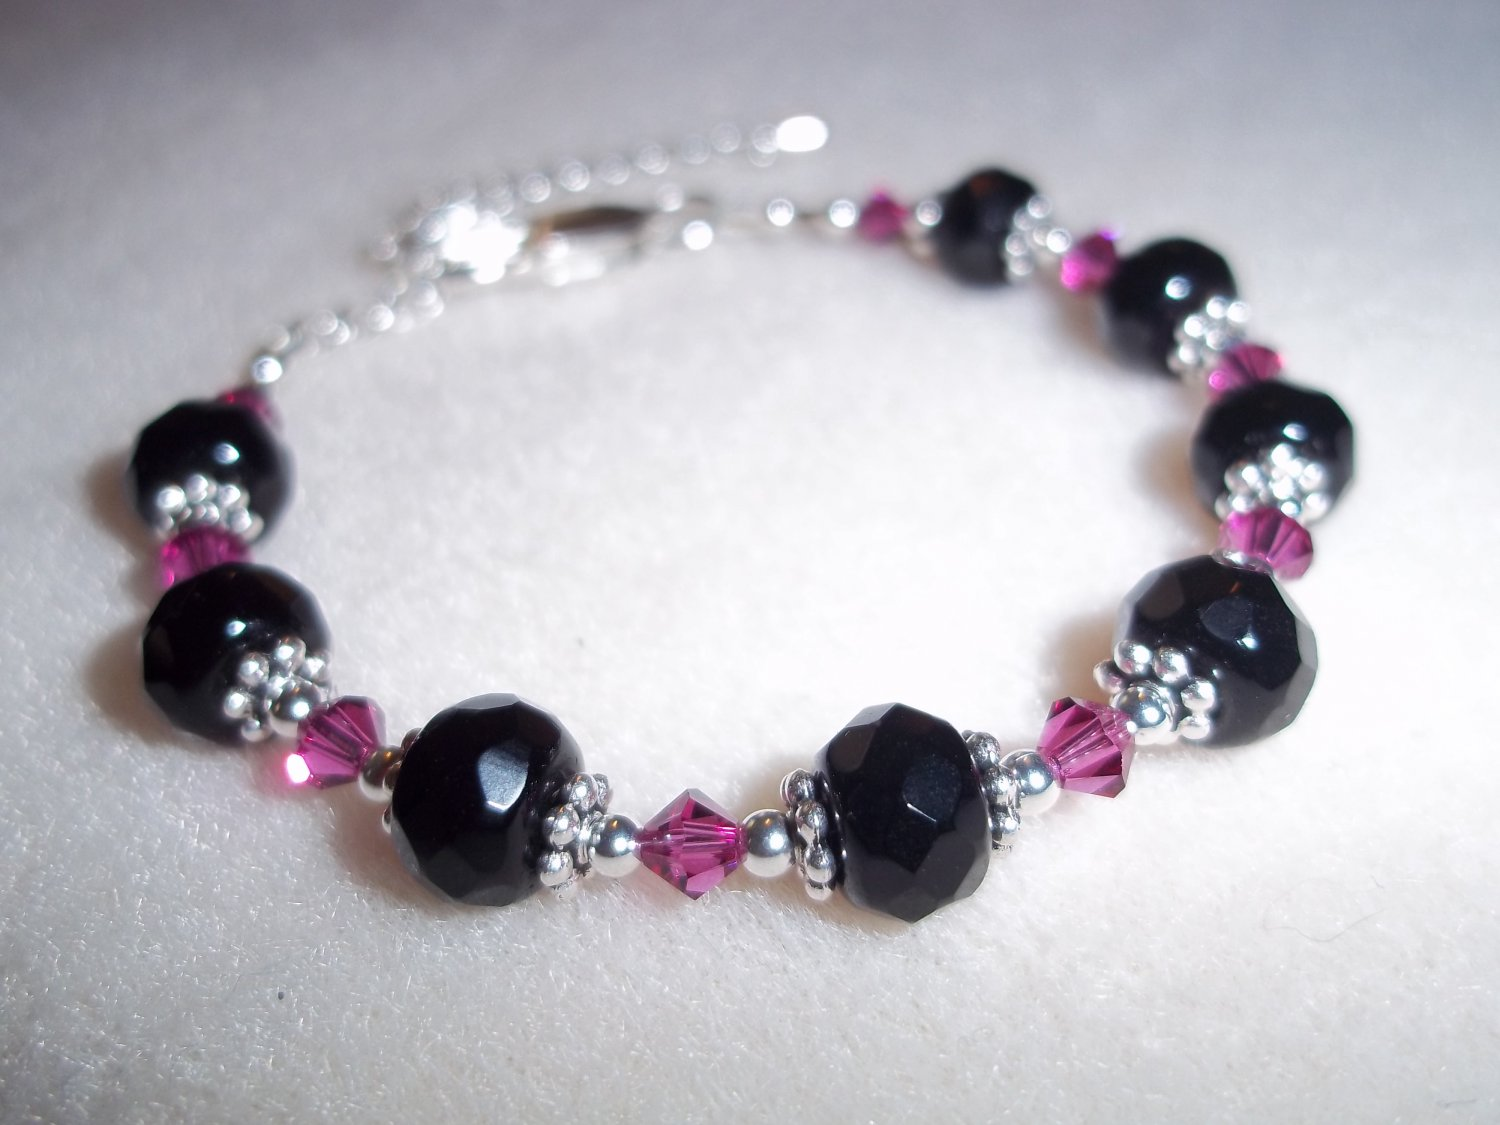 Handmade Pink & Black Beaded Bracelet